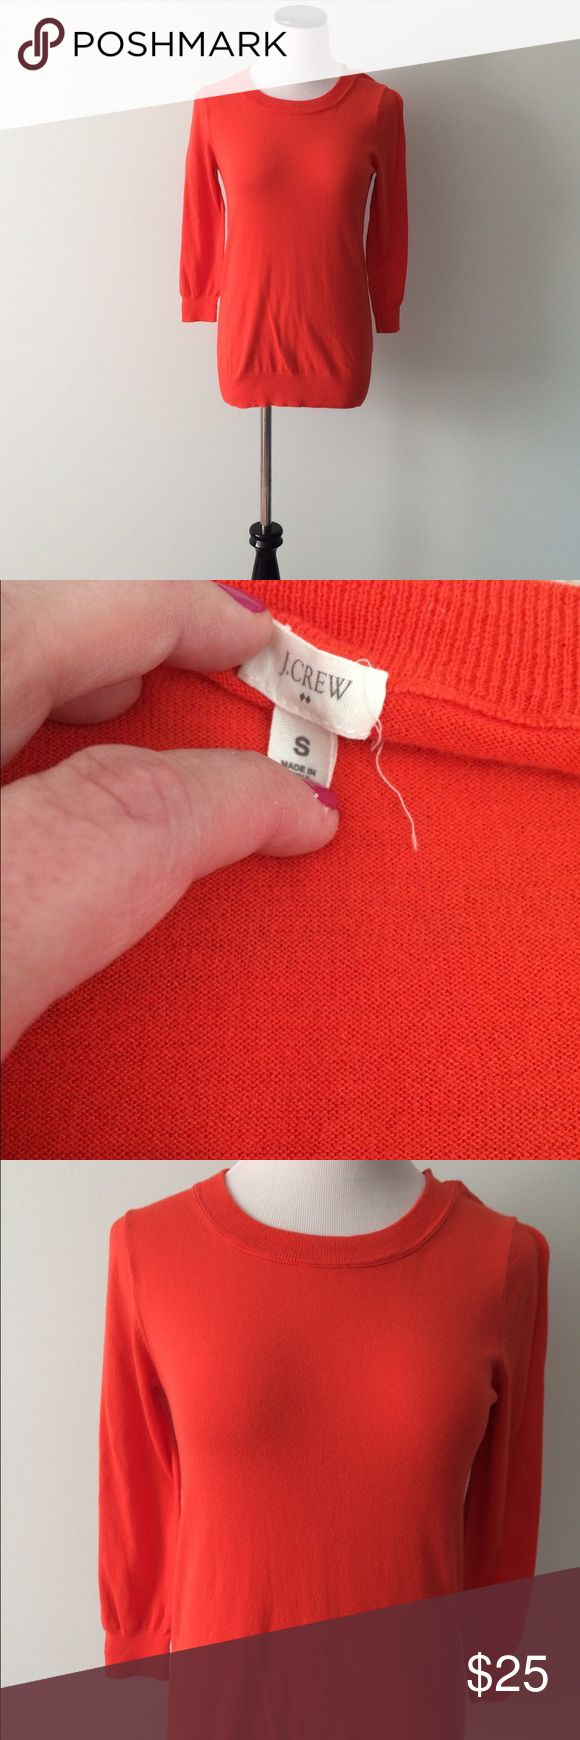 J. CREW Orange cotton Sweater Gently worn, orange cotton sweater 3/4 sleeves. J. Crew Sweaters Crew & Scoop Necks